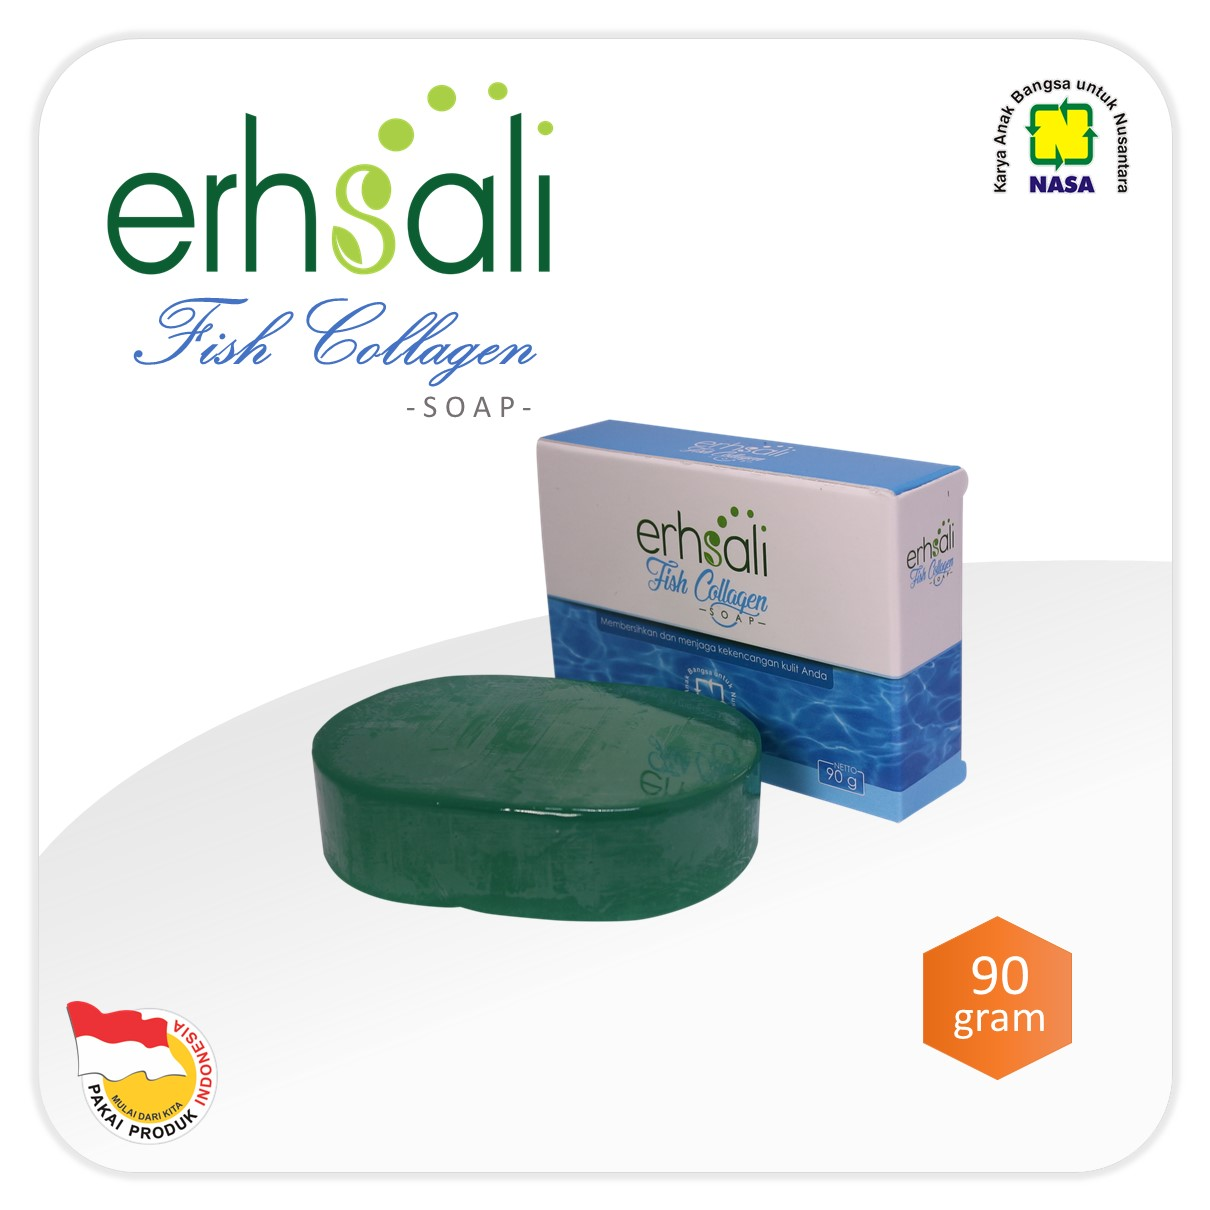 ERHSALI Fish Collagen Soap NASA